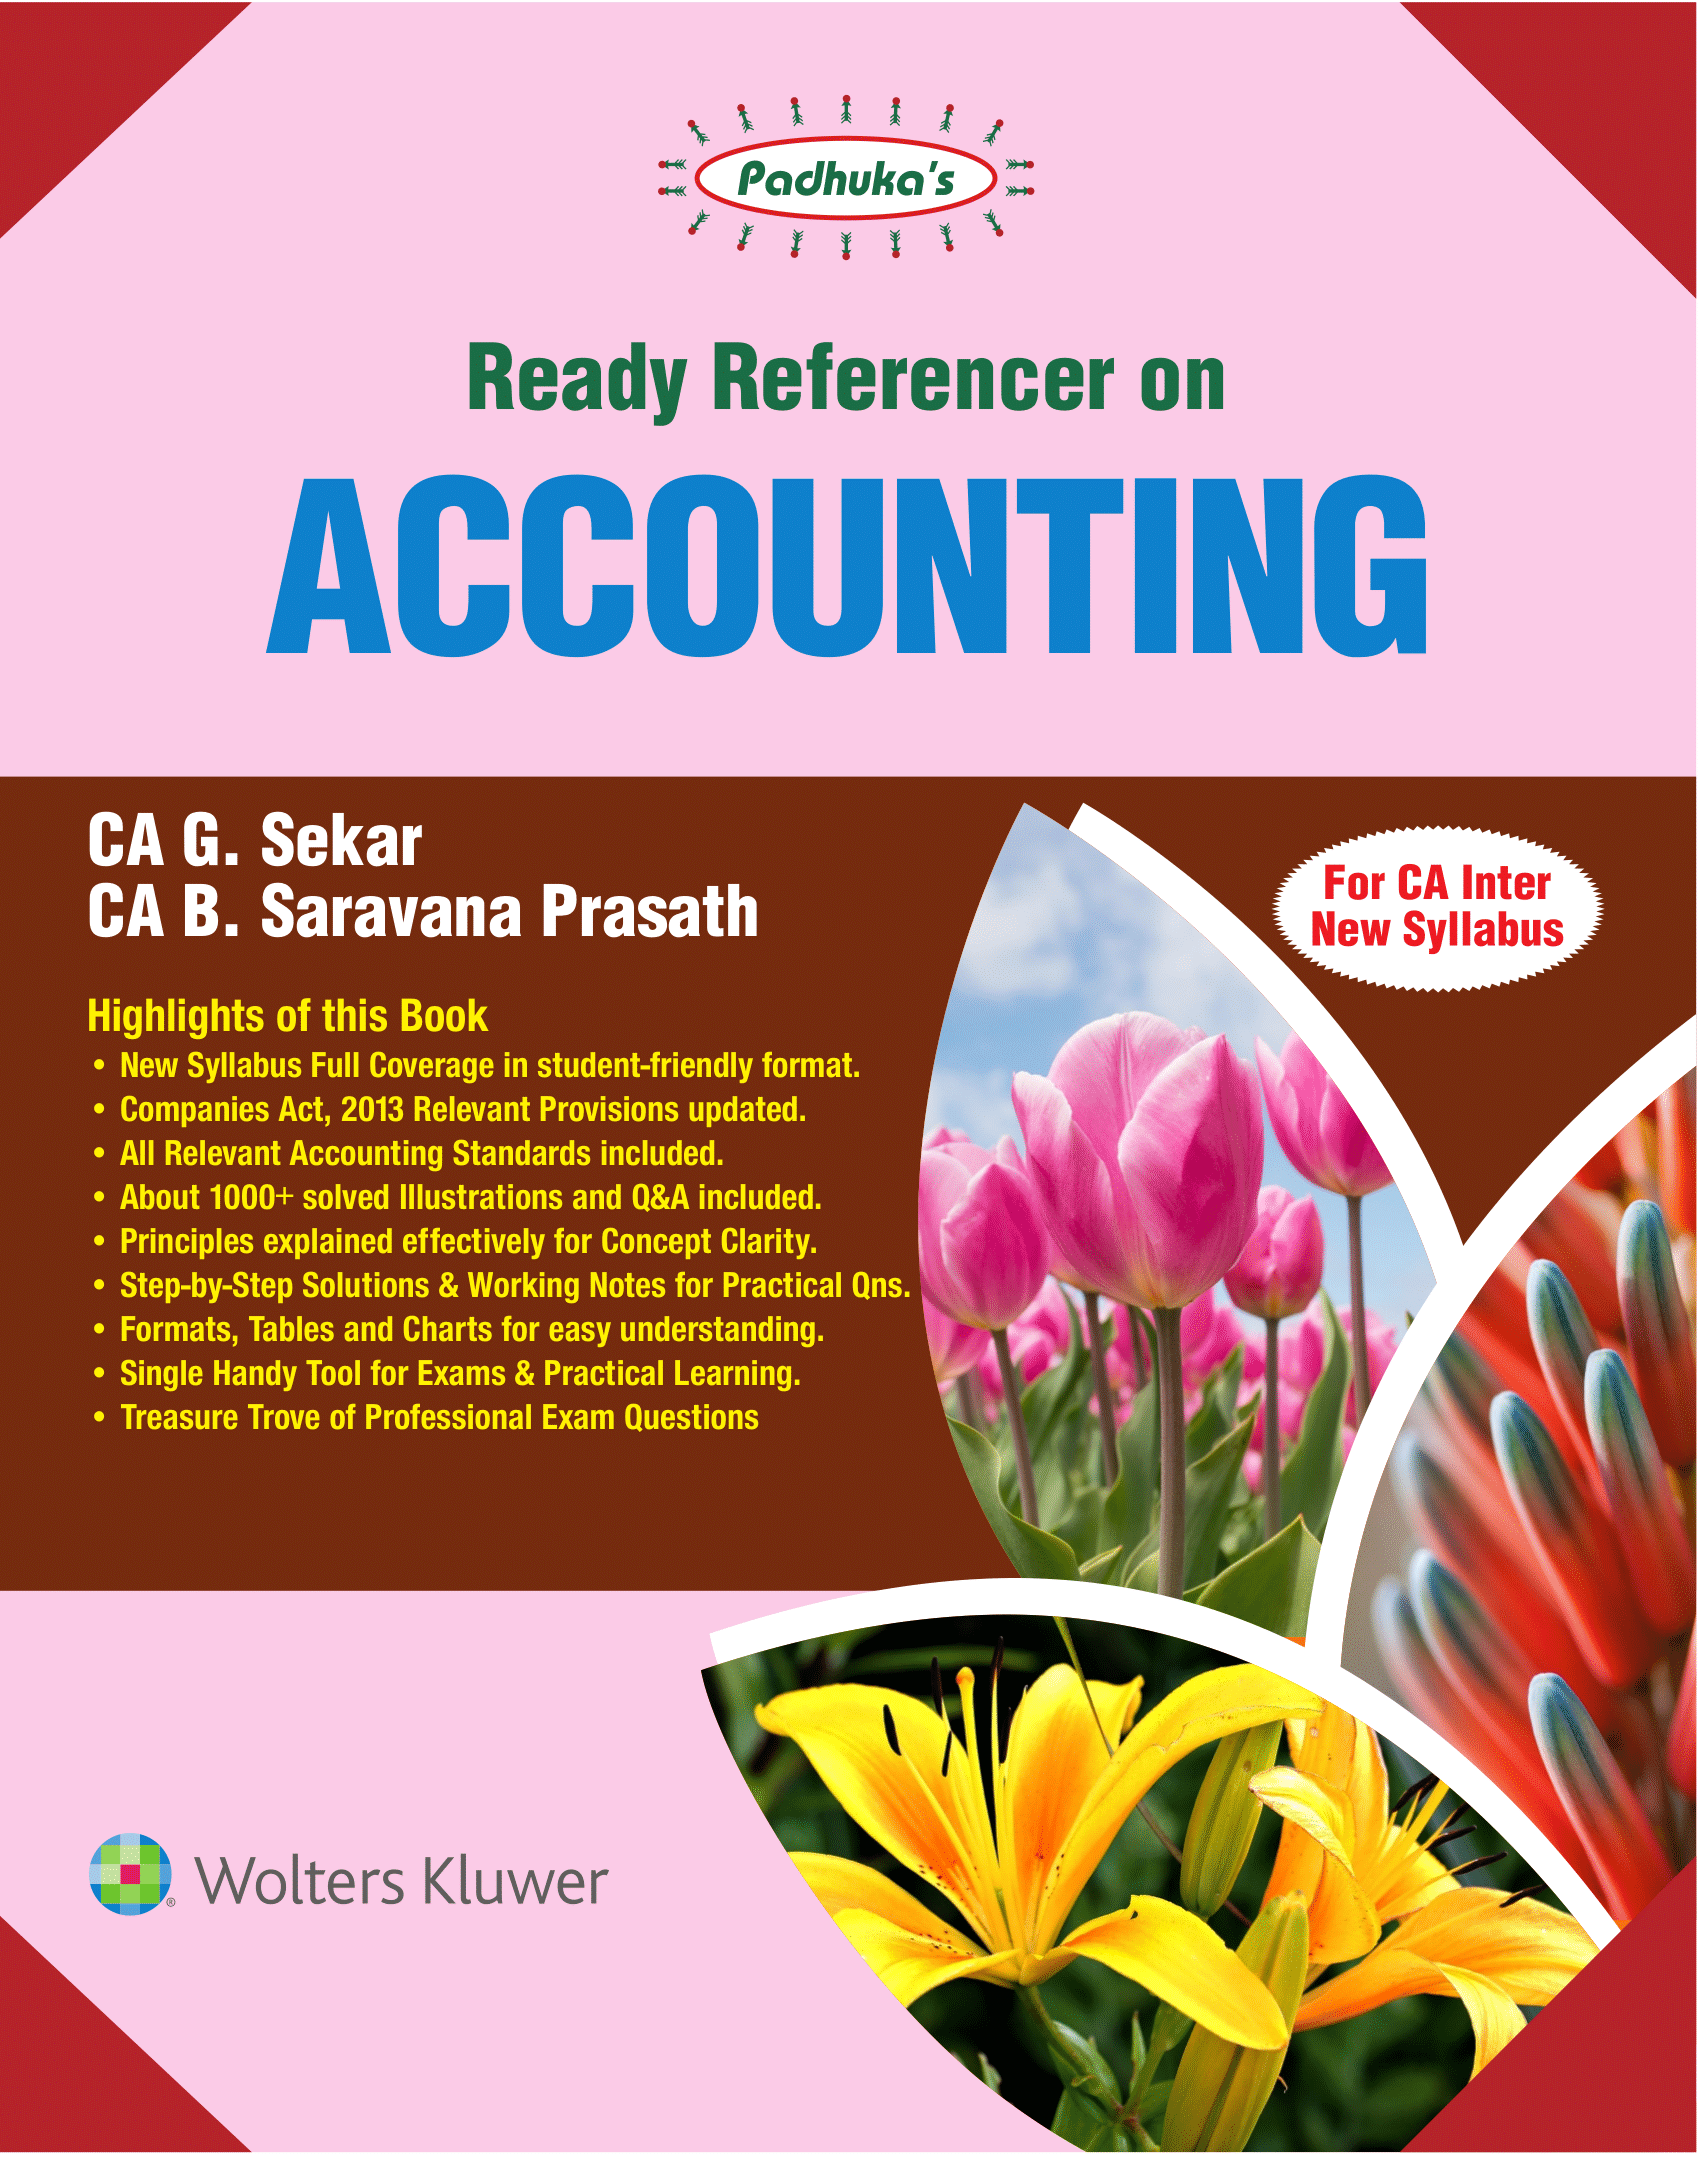 CCH Paduka's Ready Reference on Accounting for CA Inter new syllabus (IPC) -Group I  by CA G. Sekar and CA B. Saravana Prasath (Wolters Kluwer Publishing) for Nov 2019 Exam